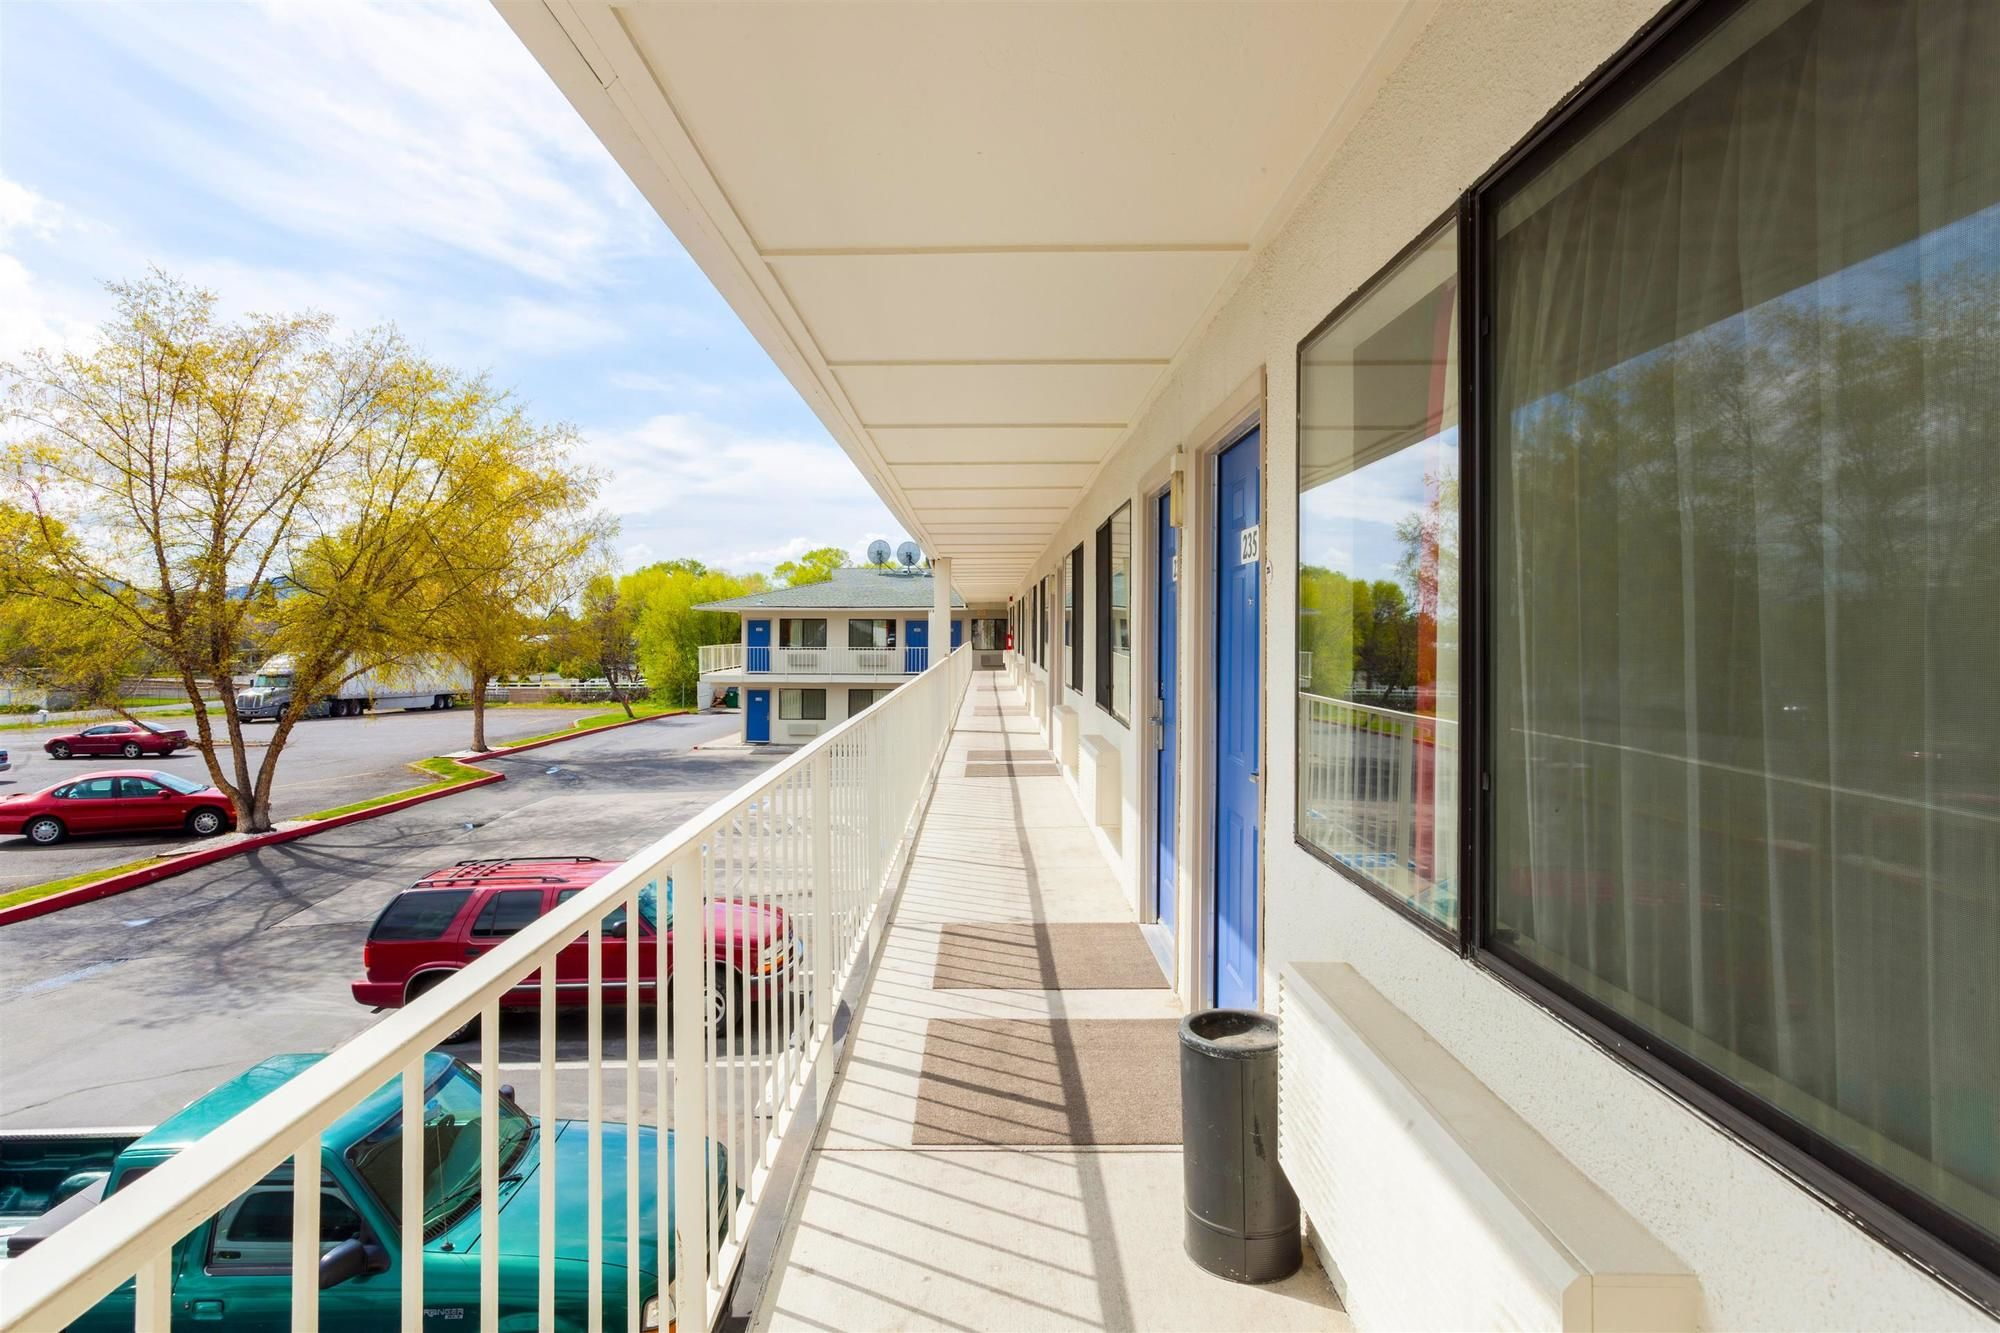 Discount coupon for motel 6 klamath falls in klamath falls oregon save money for Klamath falls hotels with swimming pool